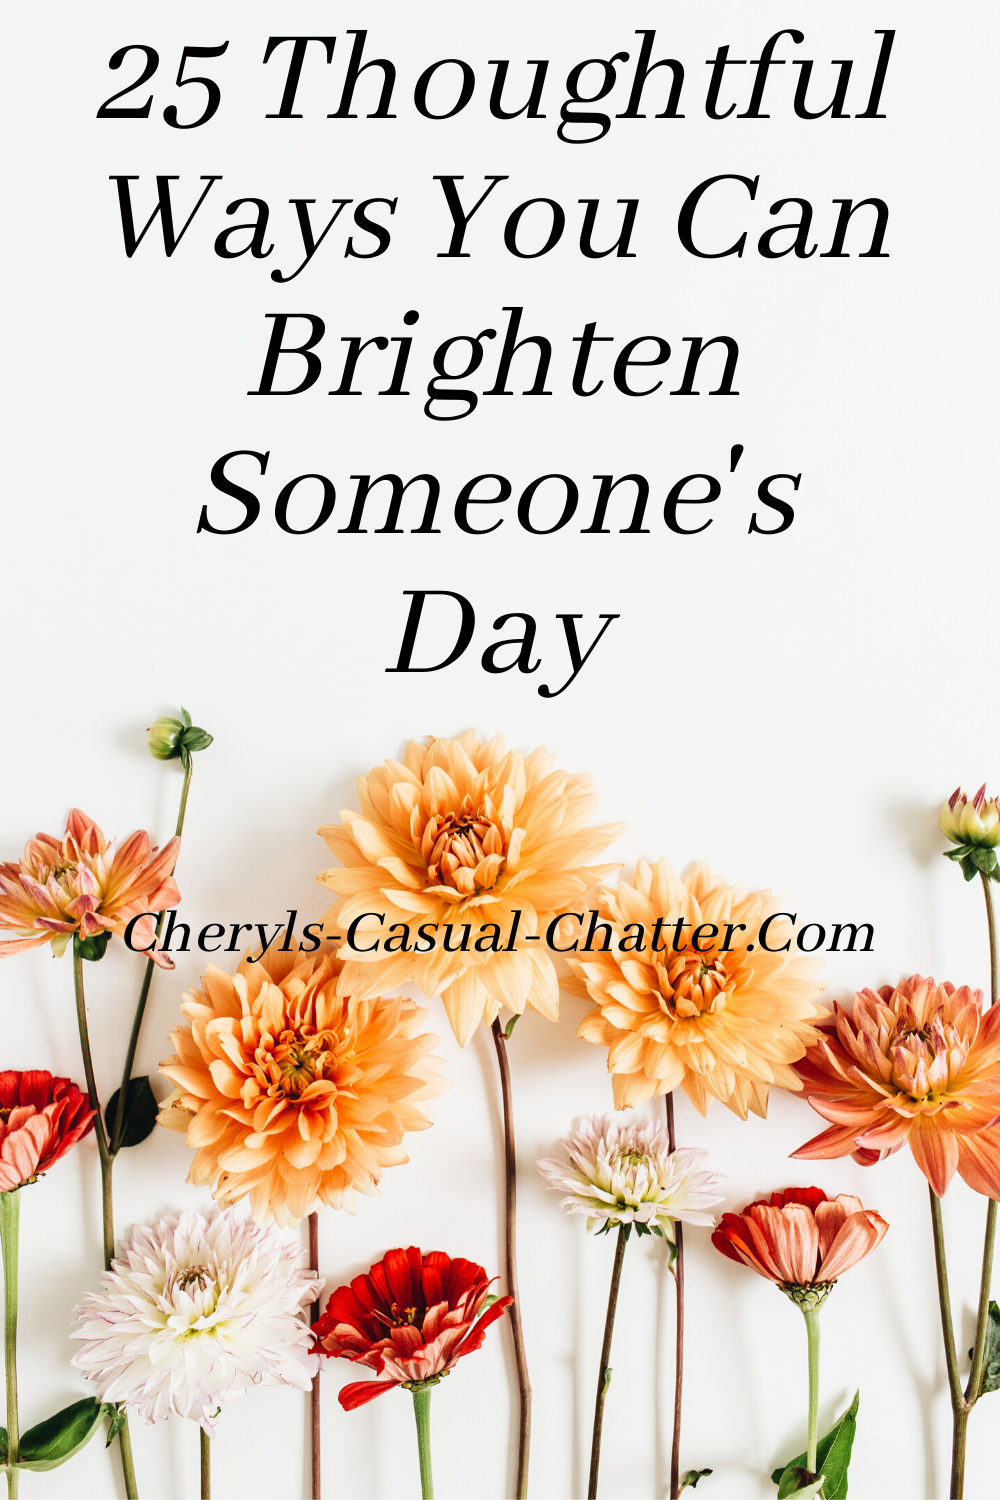 Brighten someone's day today.  25 tips for doing just that. #happyday #kindness